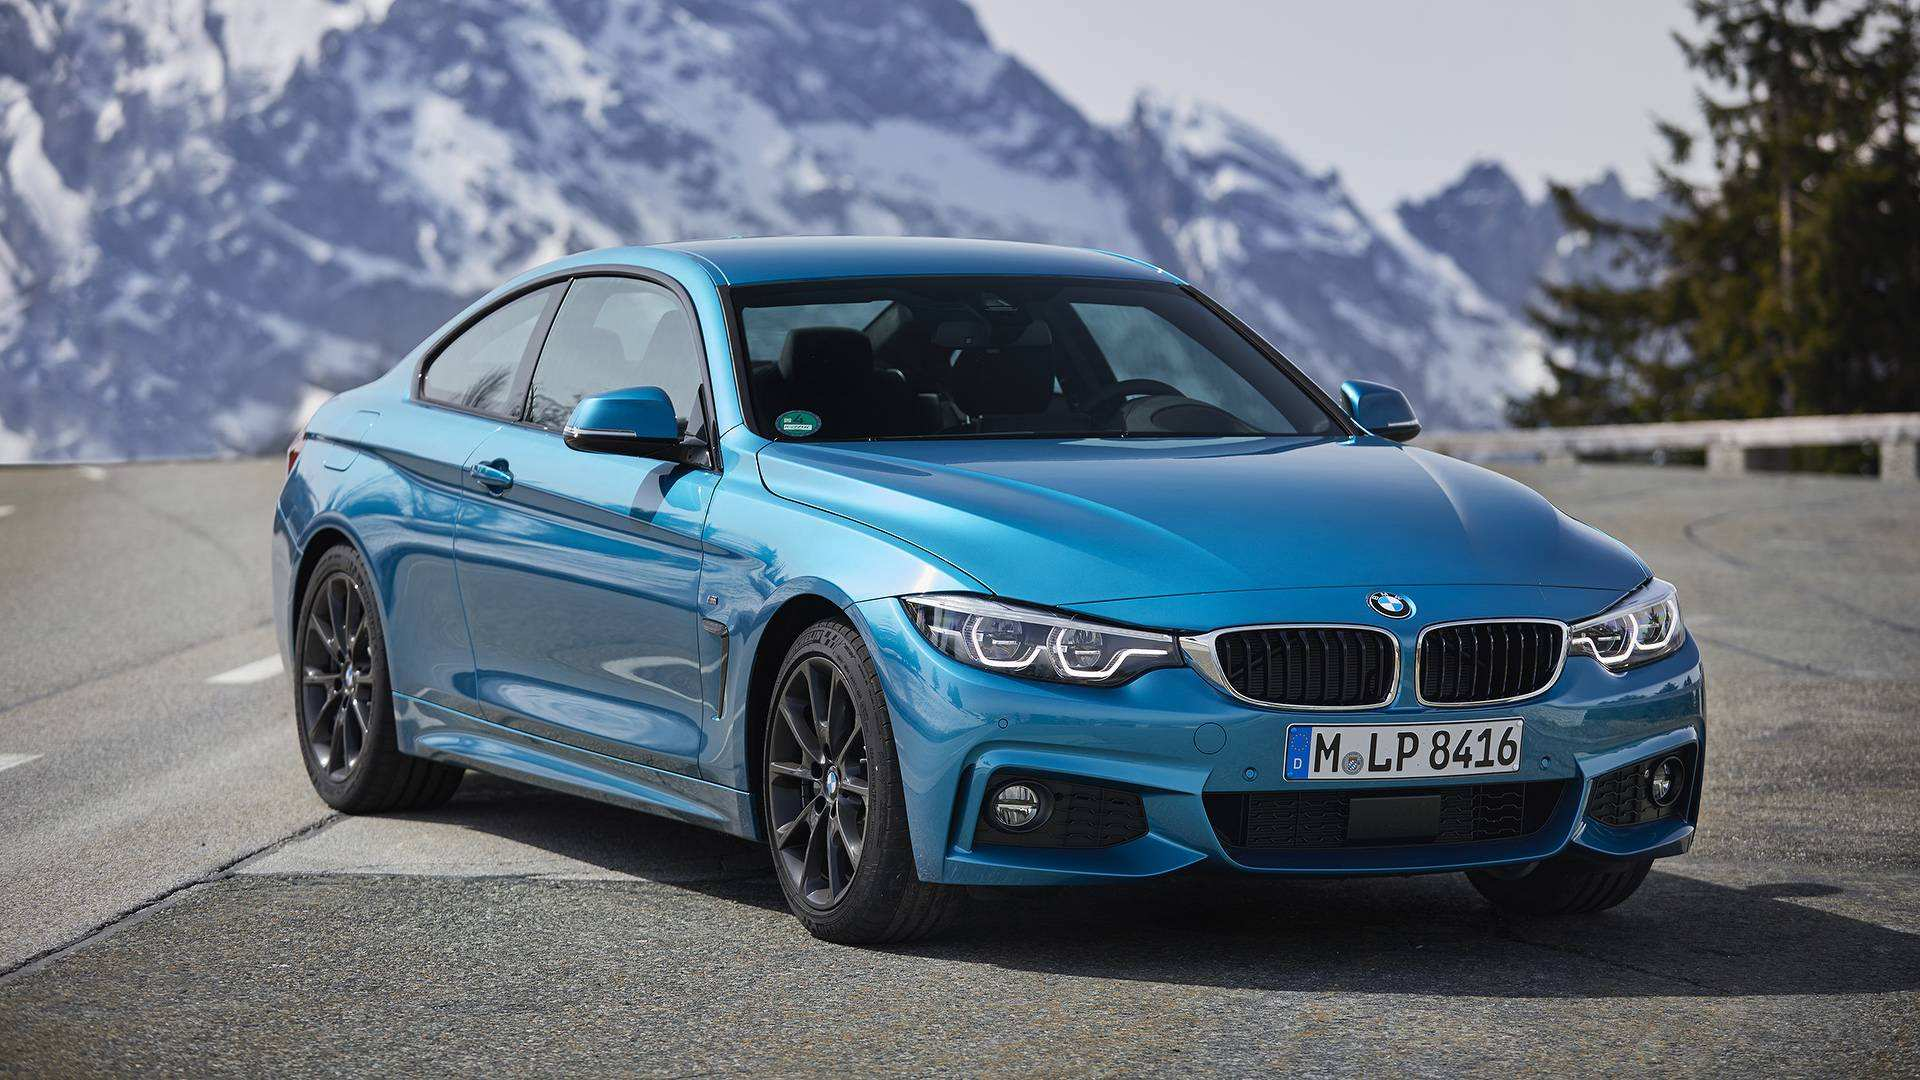 81 All New 2019 Bmw 440I Review Prices with 2019 Bmw 440I Review